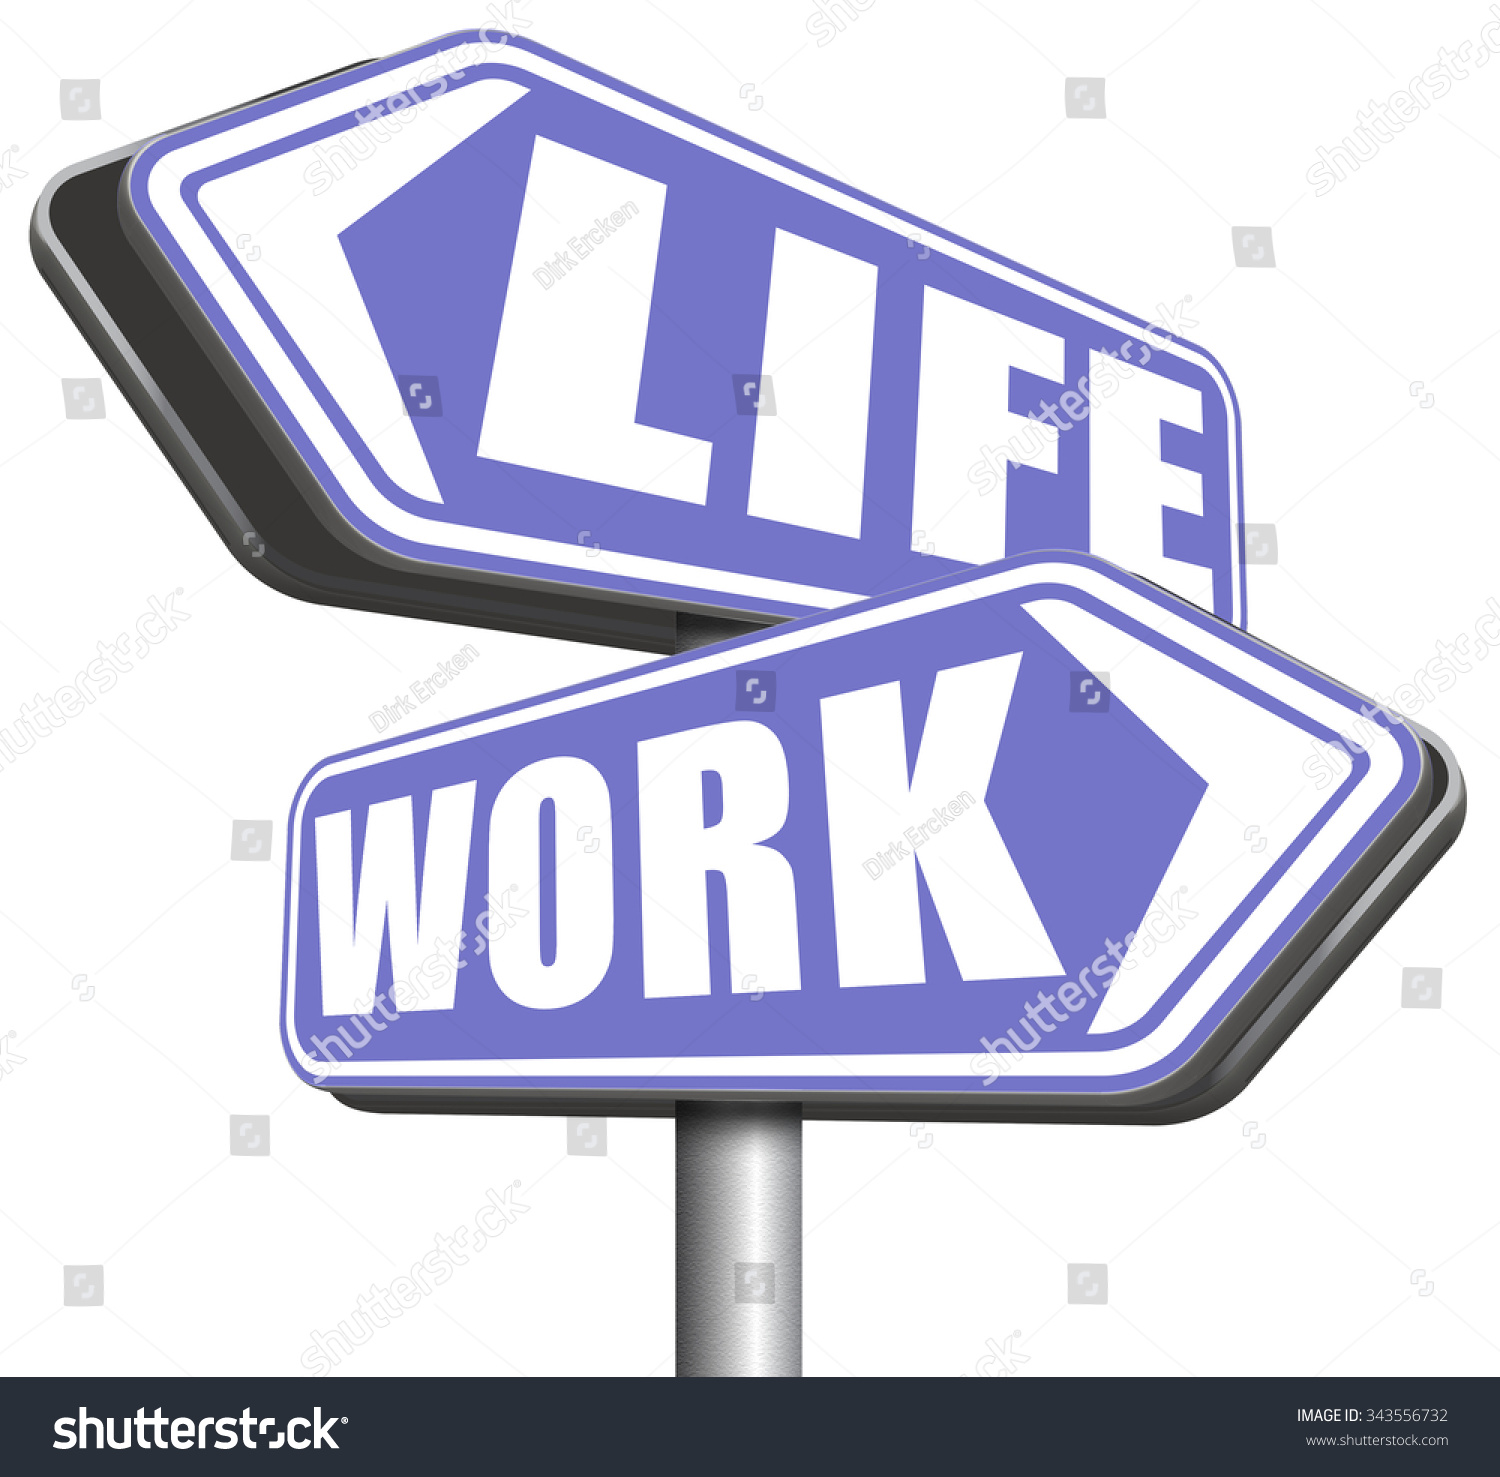 work life balance importance career versus stock illustration work life balance importance of career versus family leisure time and friends avoid burnout mental health